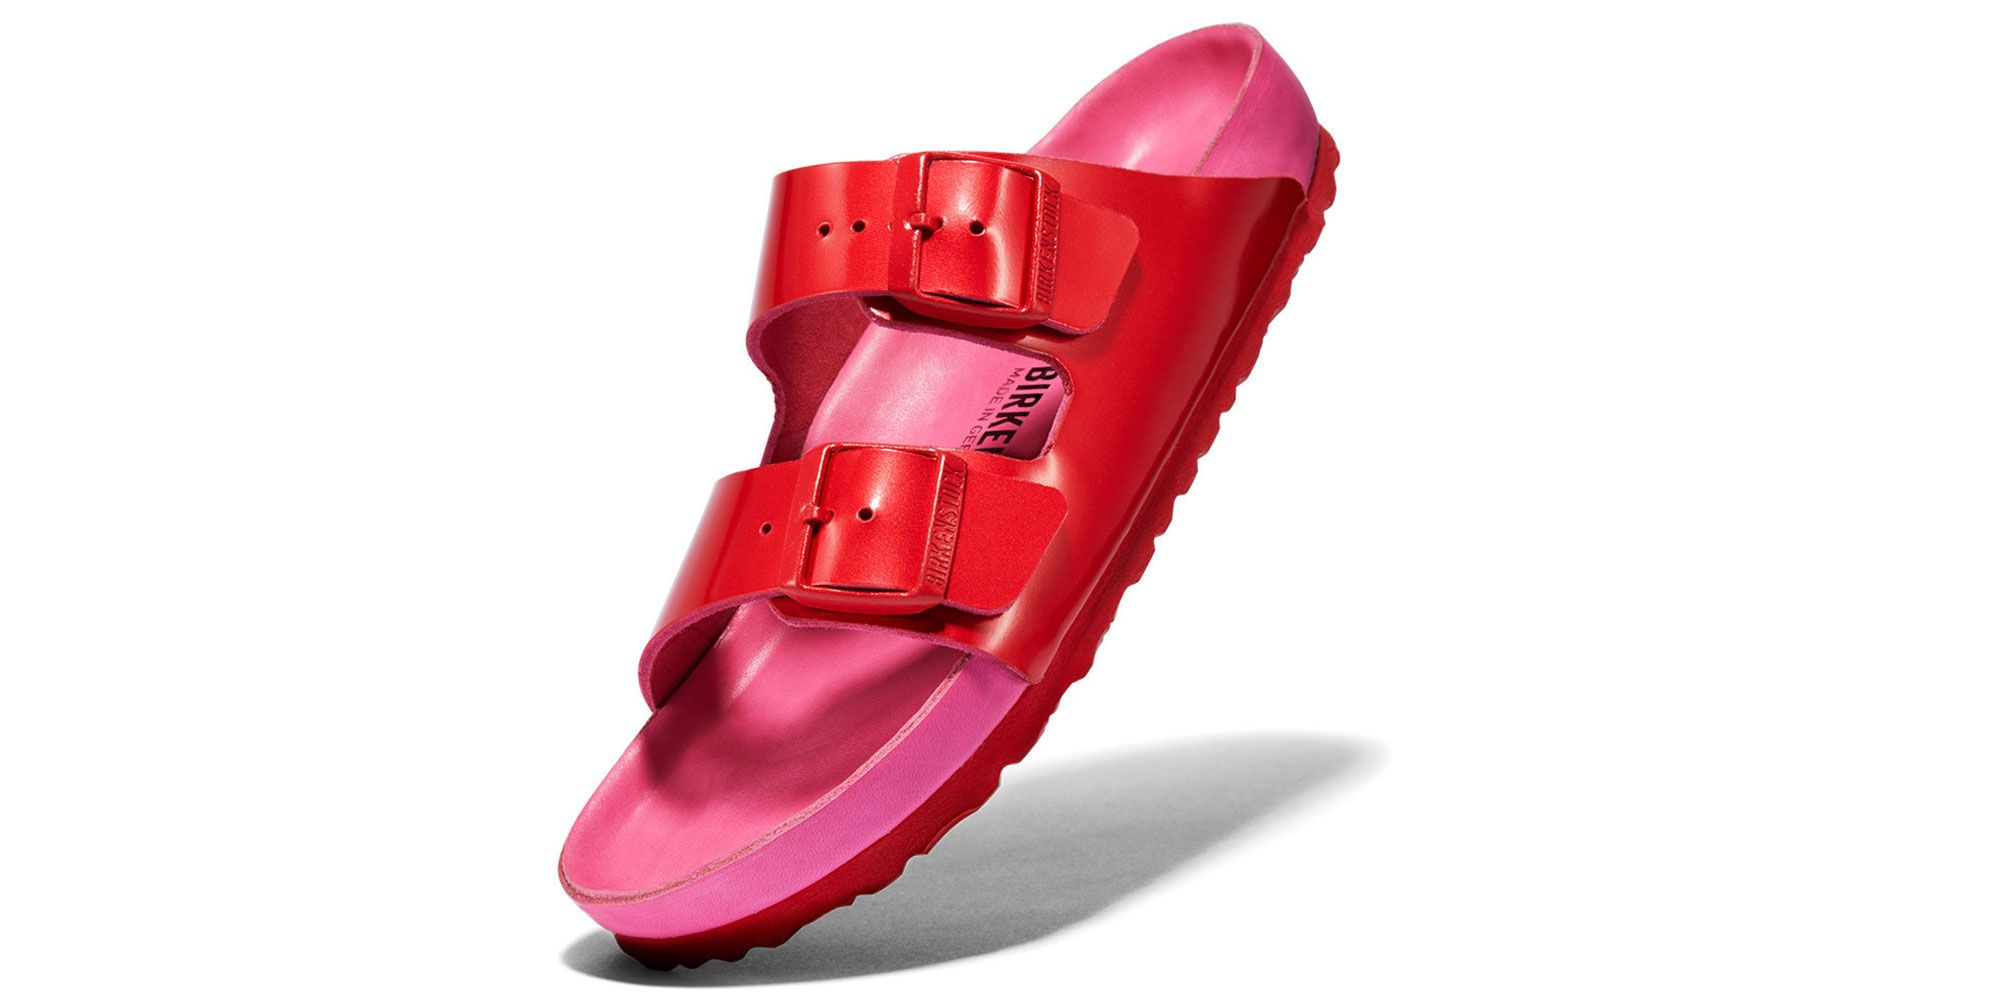 The Limited-Edition Birkenstocks of